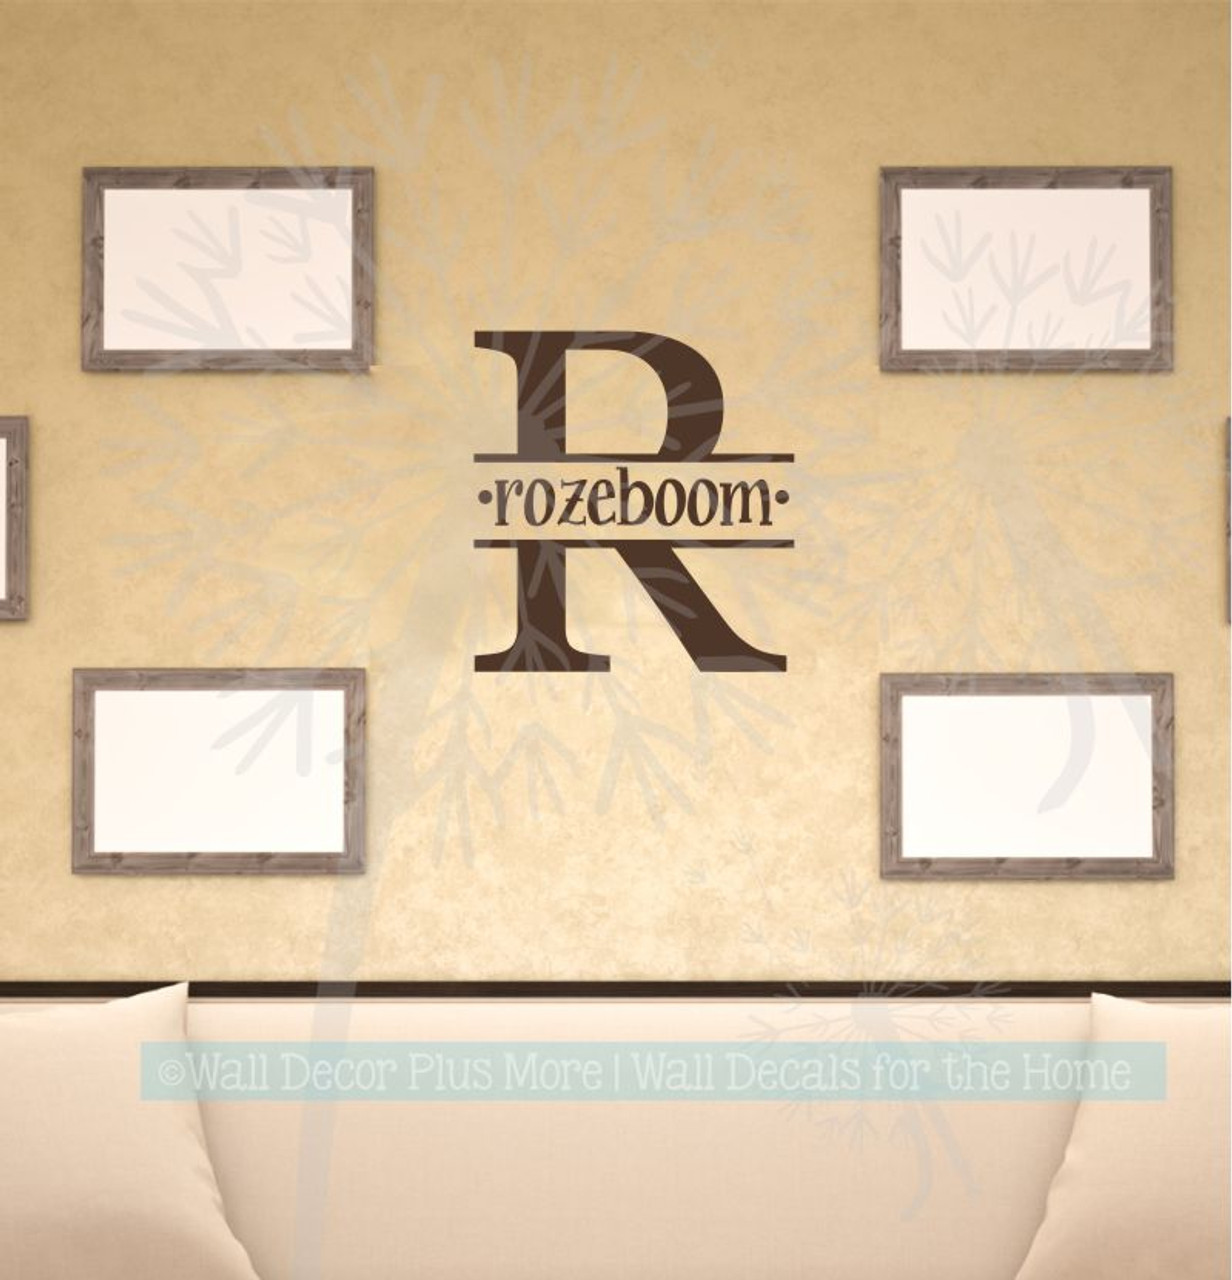 Monogram Custom Letter Wall Decal Personalized with Name Vinyl Stickers